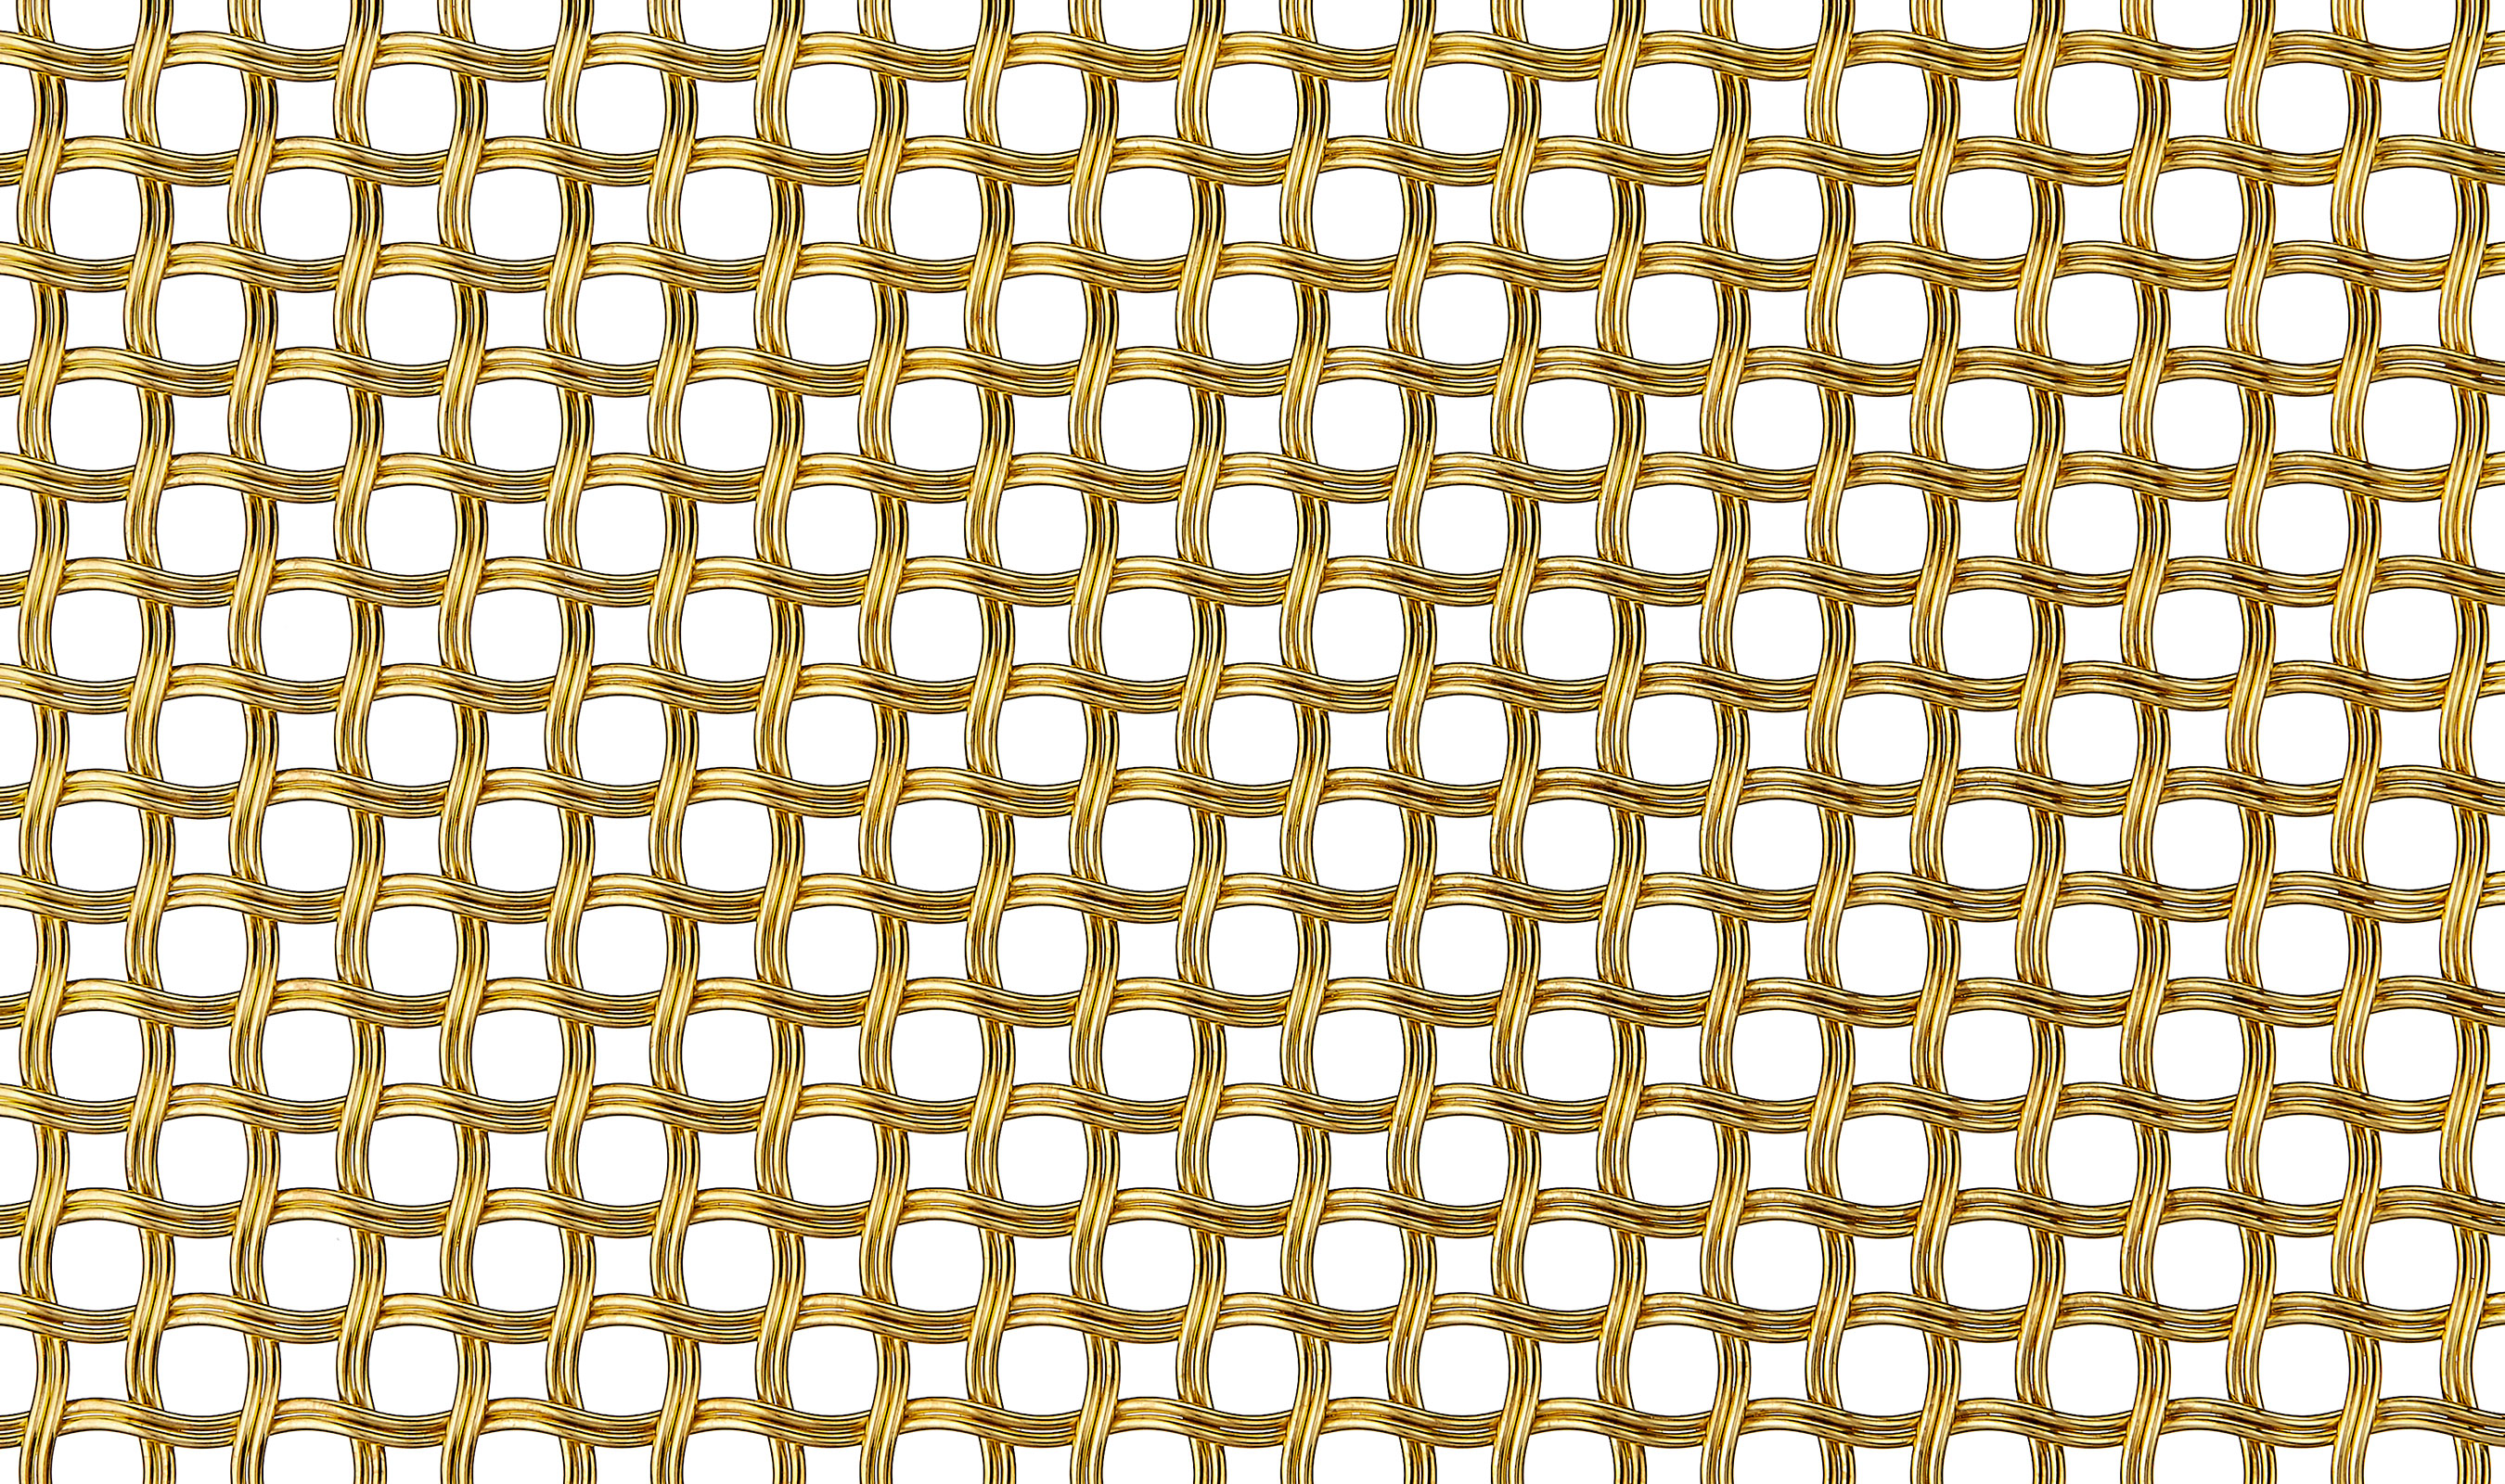 M22-83 decorative wire mesh pattern in Bright Brass Plated